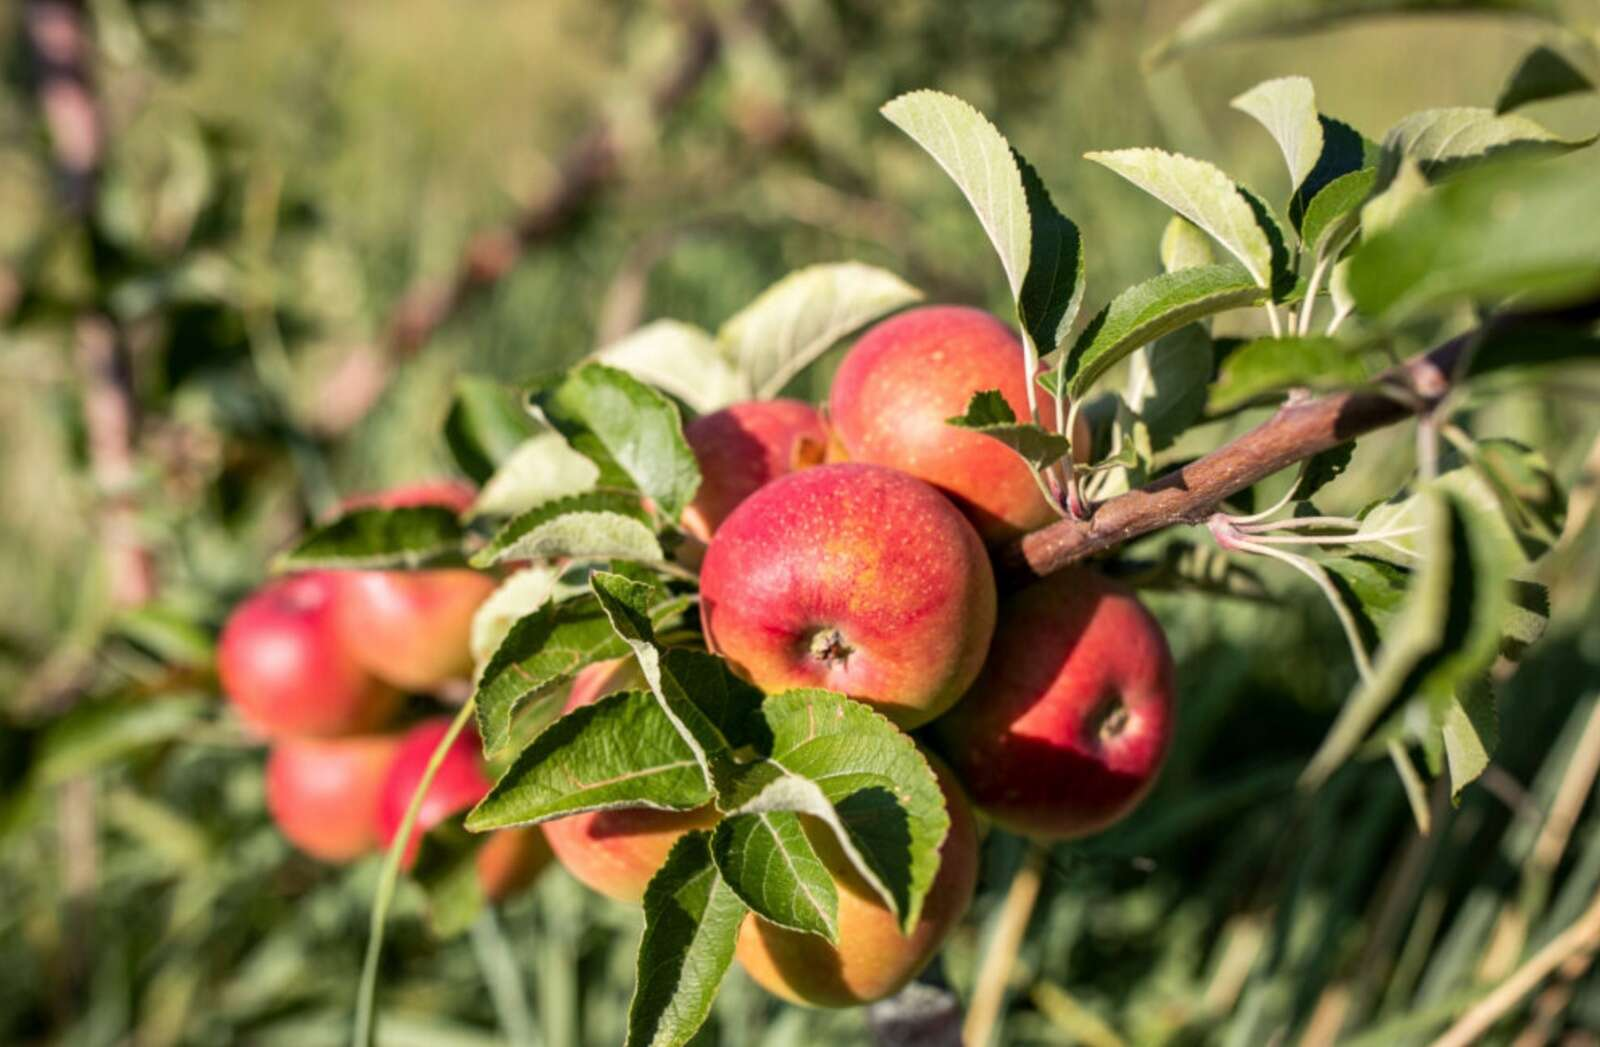 ?uuid=d4c54baa f74a 5c6a aa9e 9feb5ddb6409&function=cover&type=preview&source=false&width=1984&height=1299 The Montezuma Orchard Restoration Project preserves history of apples for the future